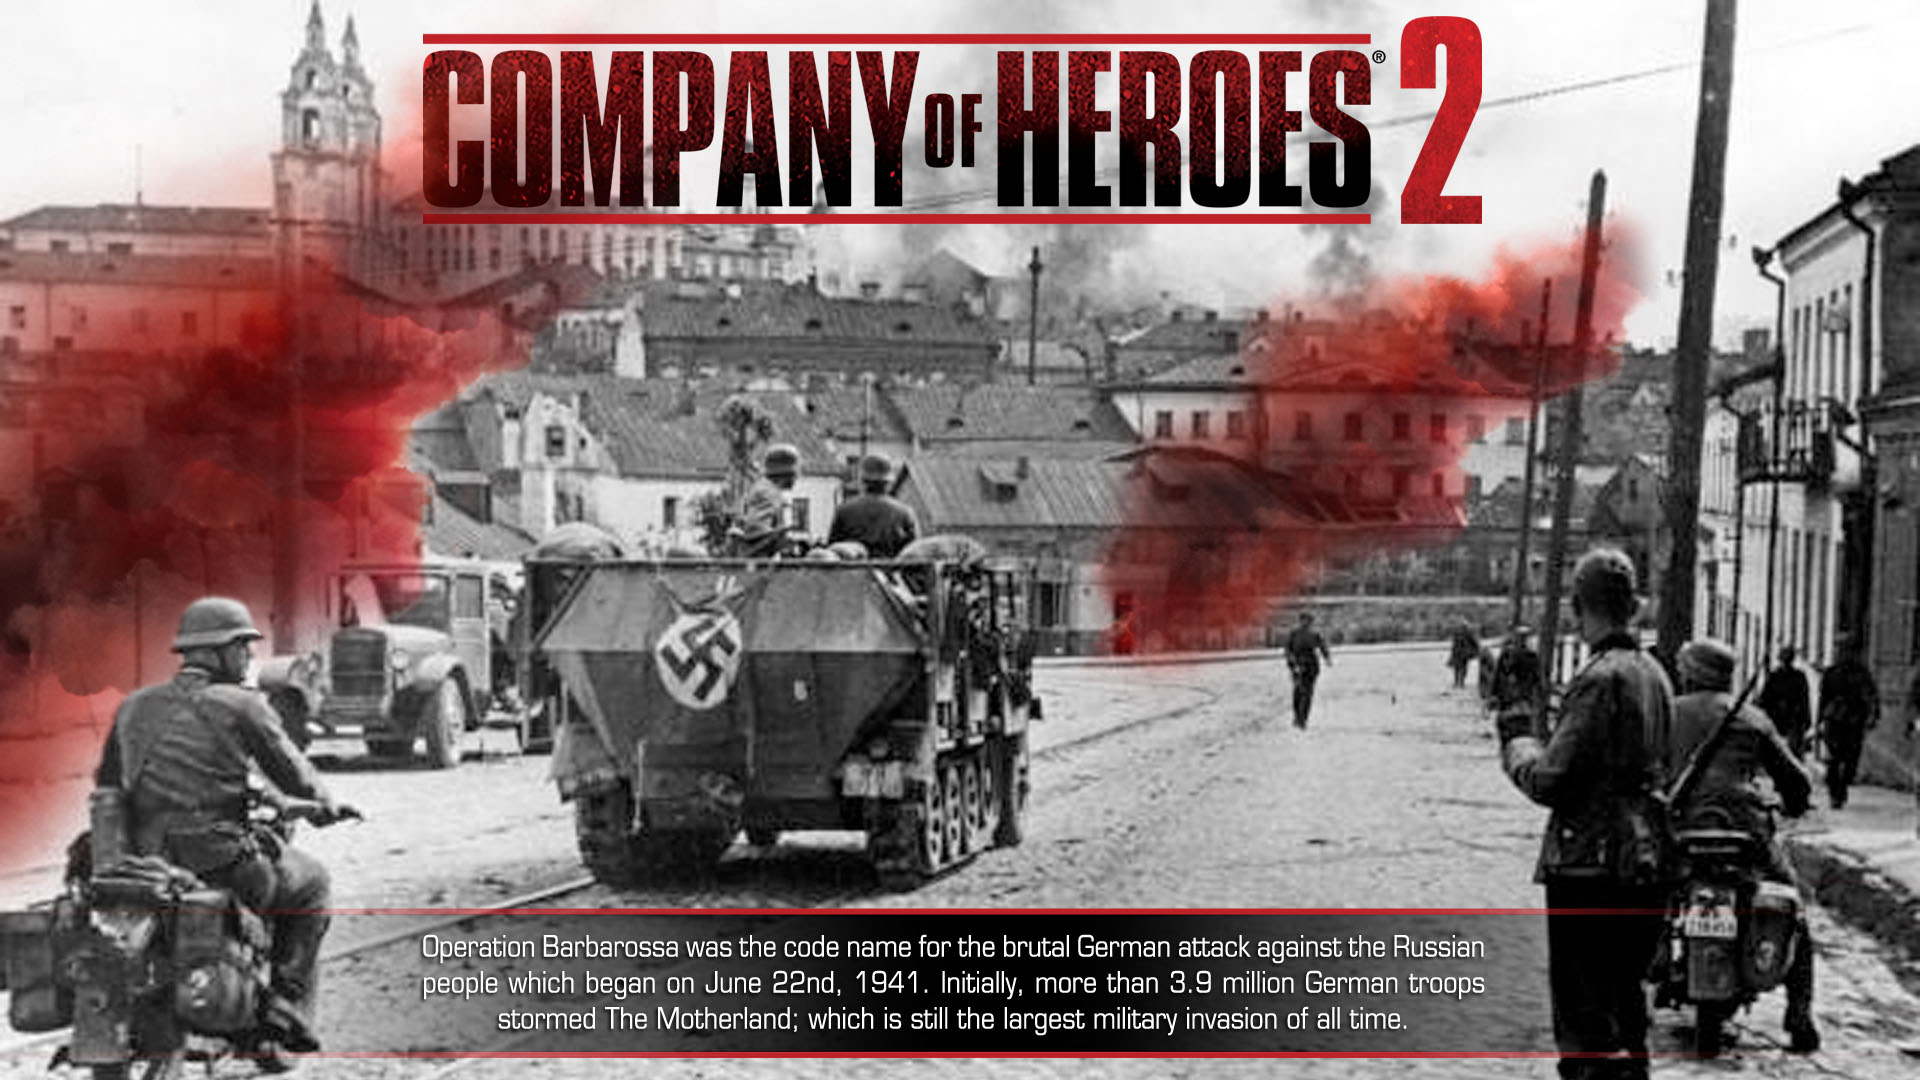 wallpaper #10 wallpaper from company of heroes 2 - gamepressure